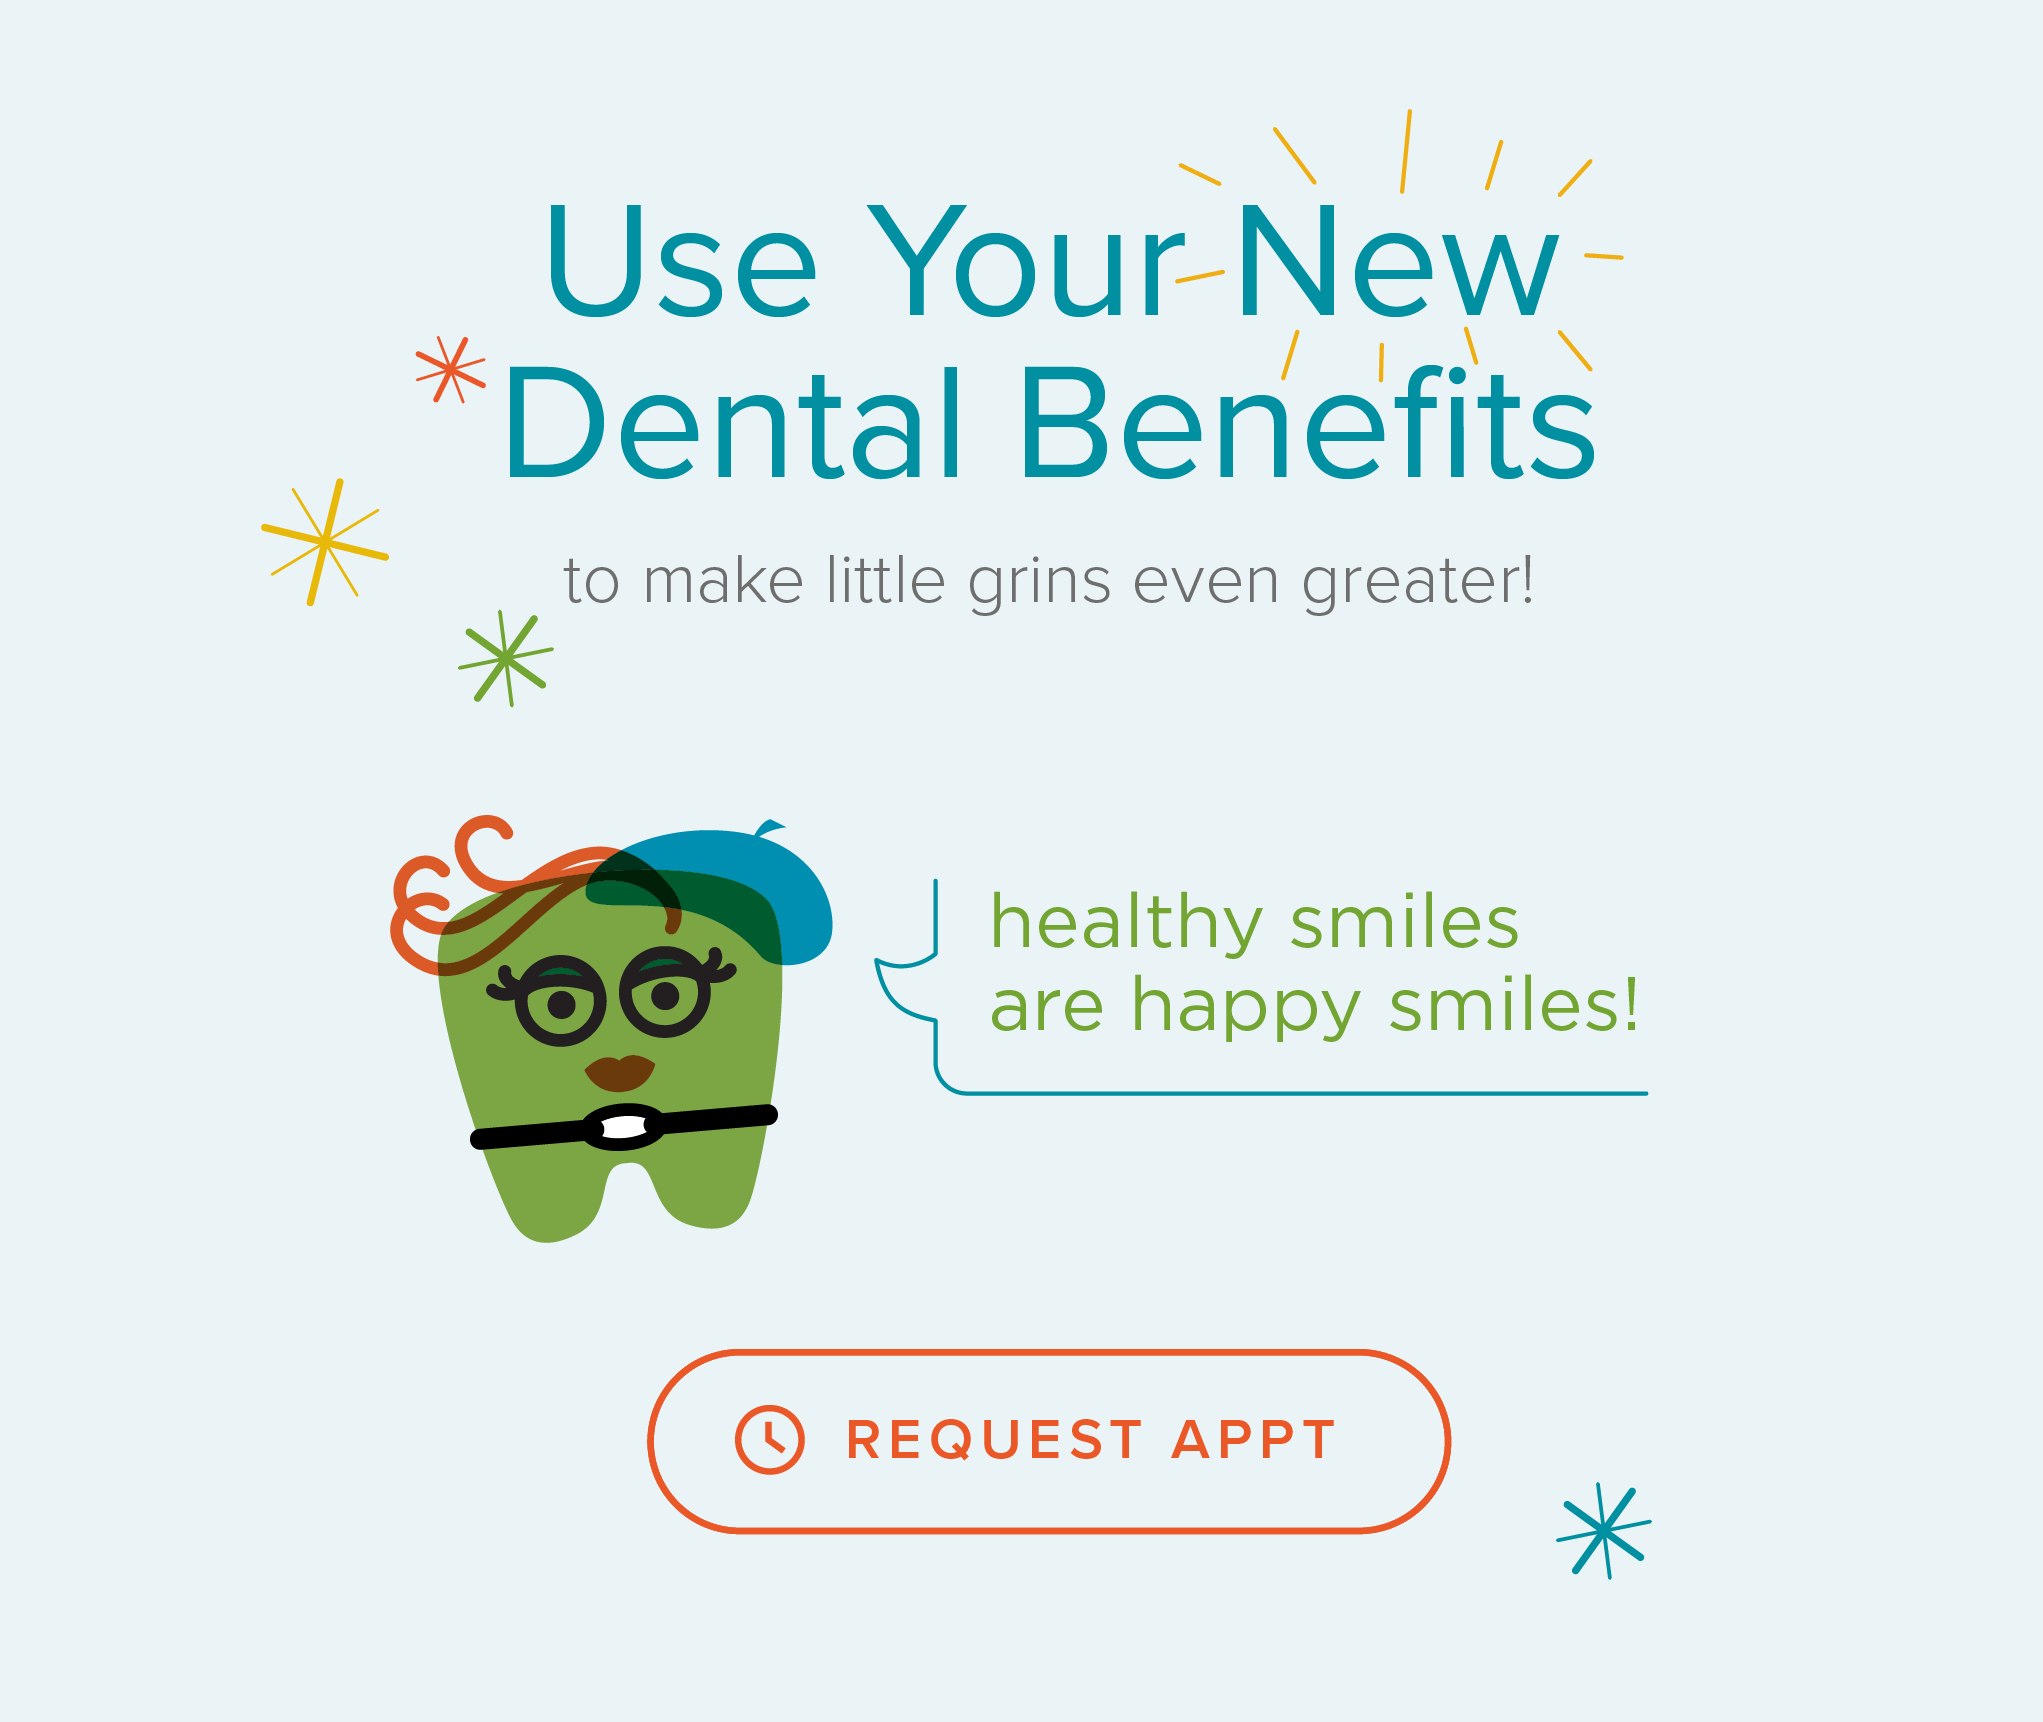 Henderson Kids' Dentistry & Orthodontics - Use Your New Dental Benefits